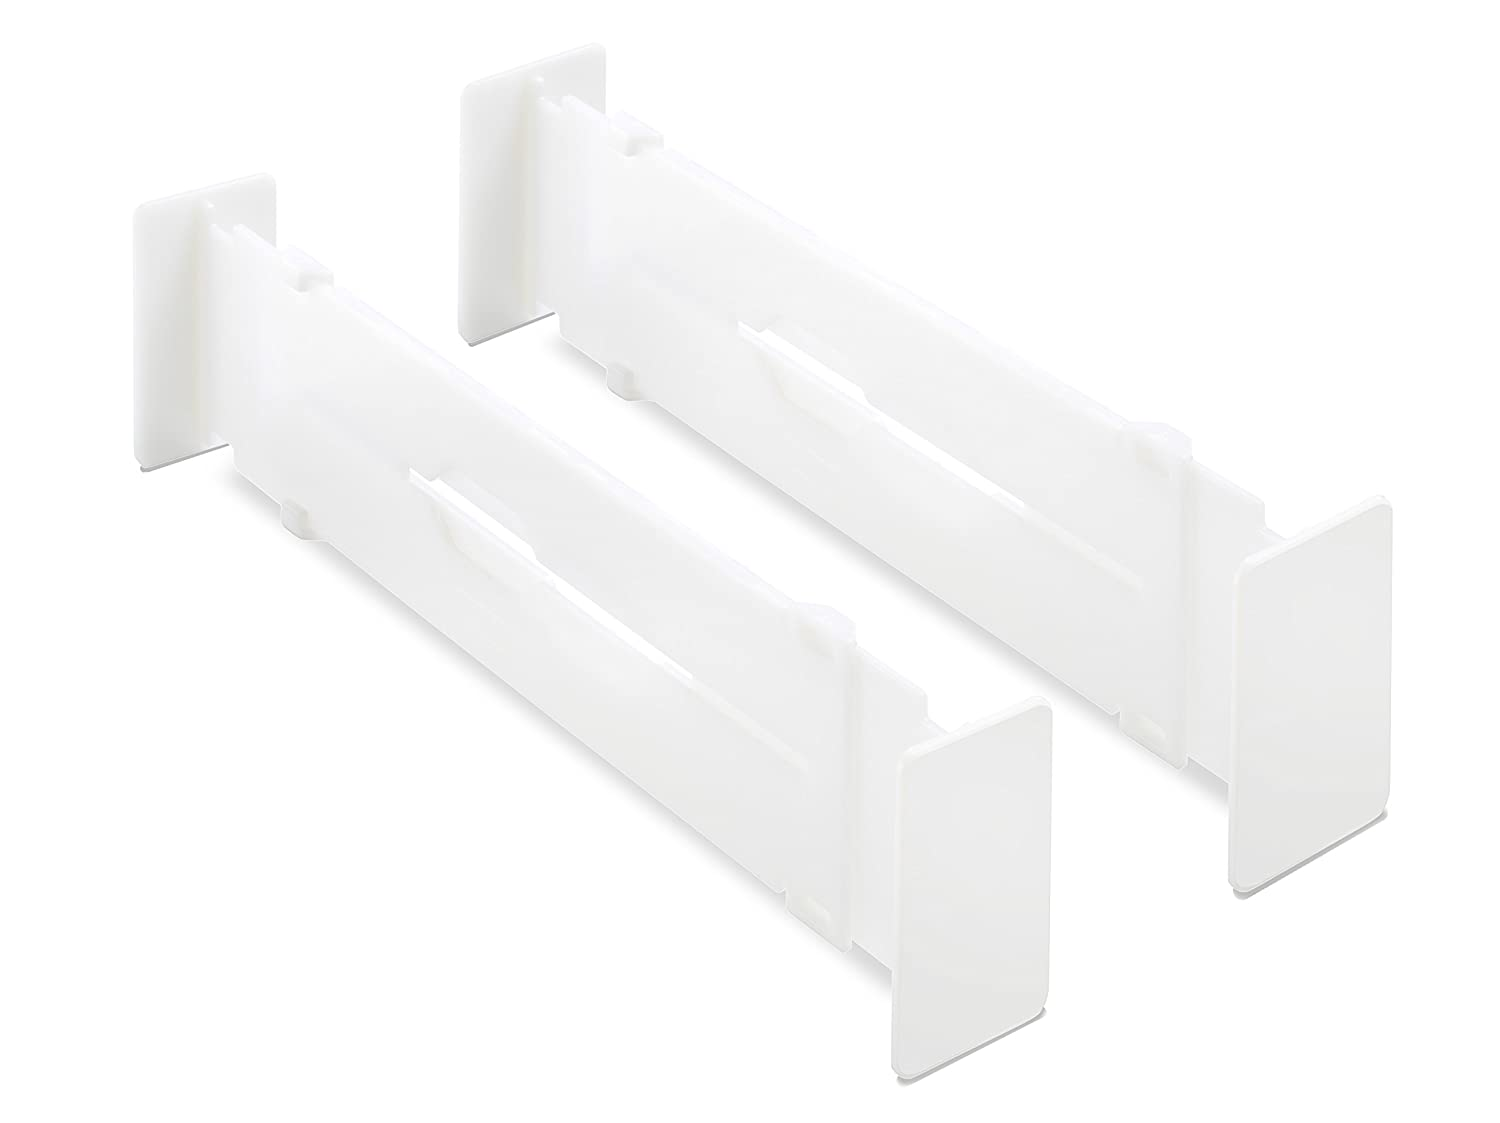 Whitmor Adjustable Drawer Dividers - Drawer Organizers - White (Set of 2) 6025-3927